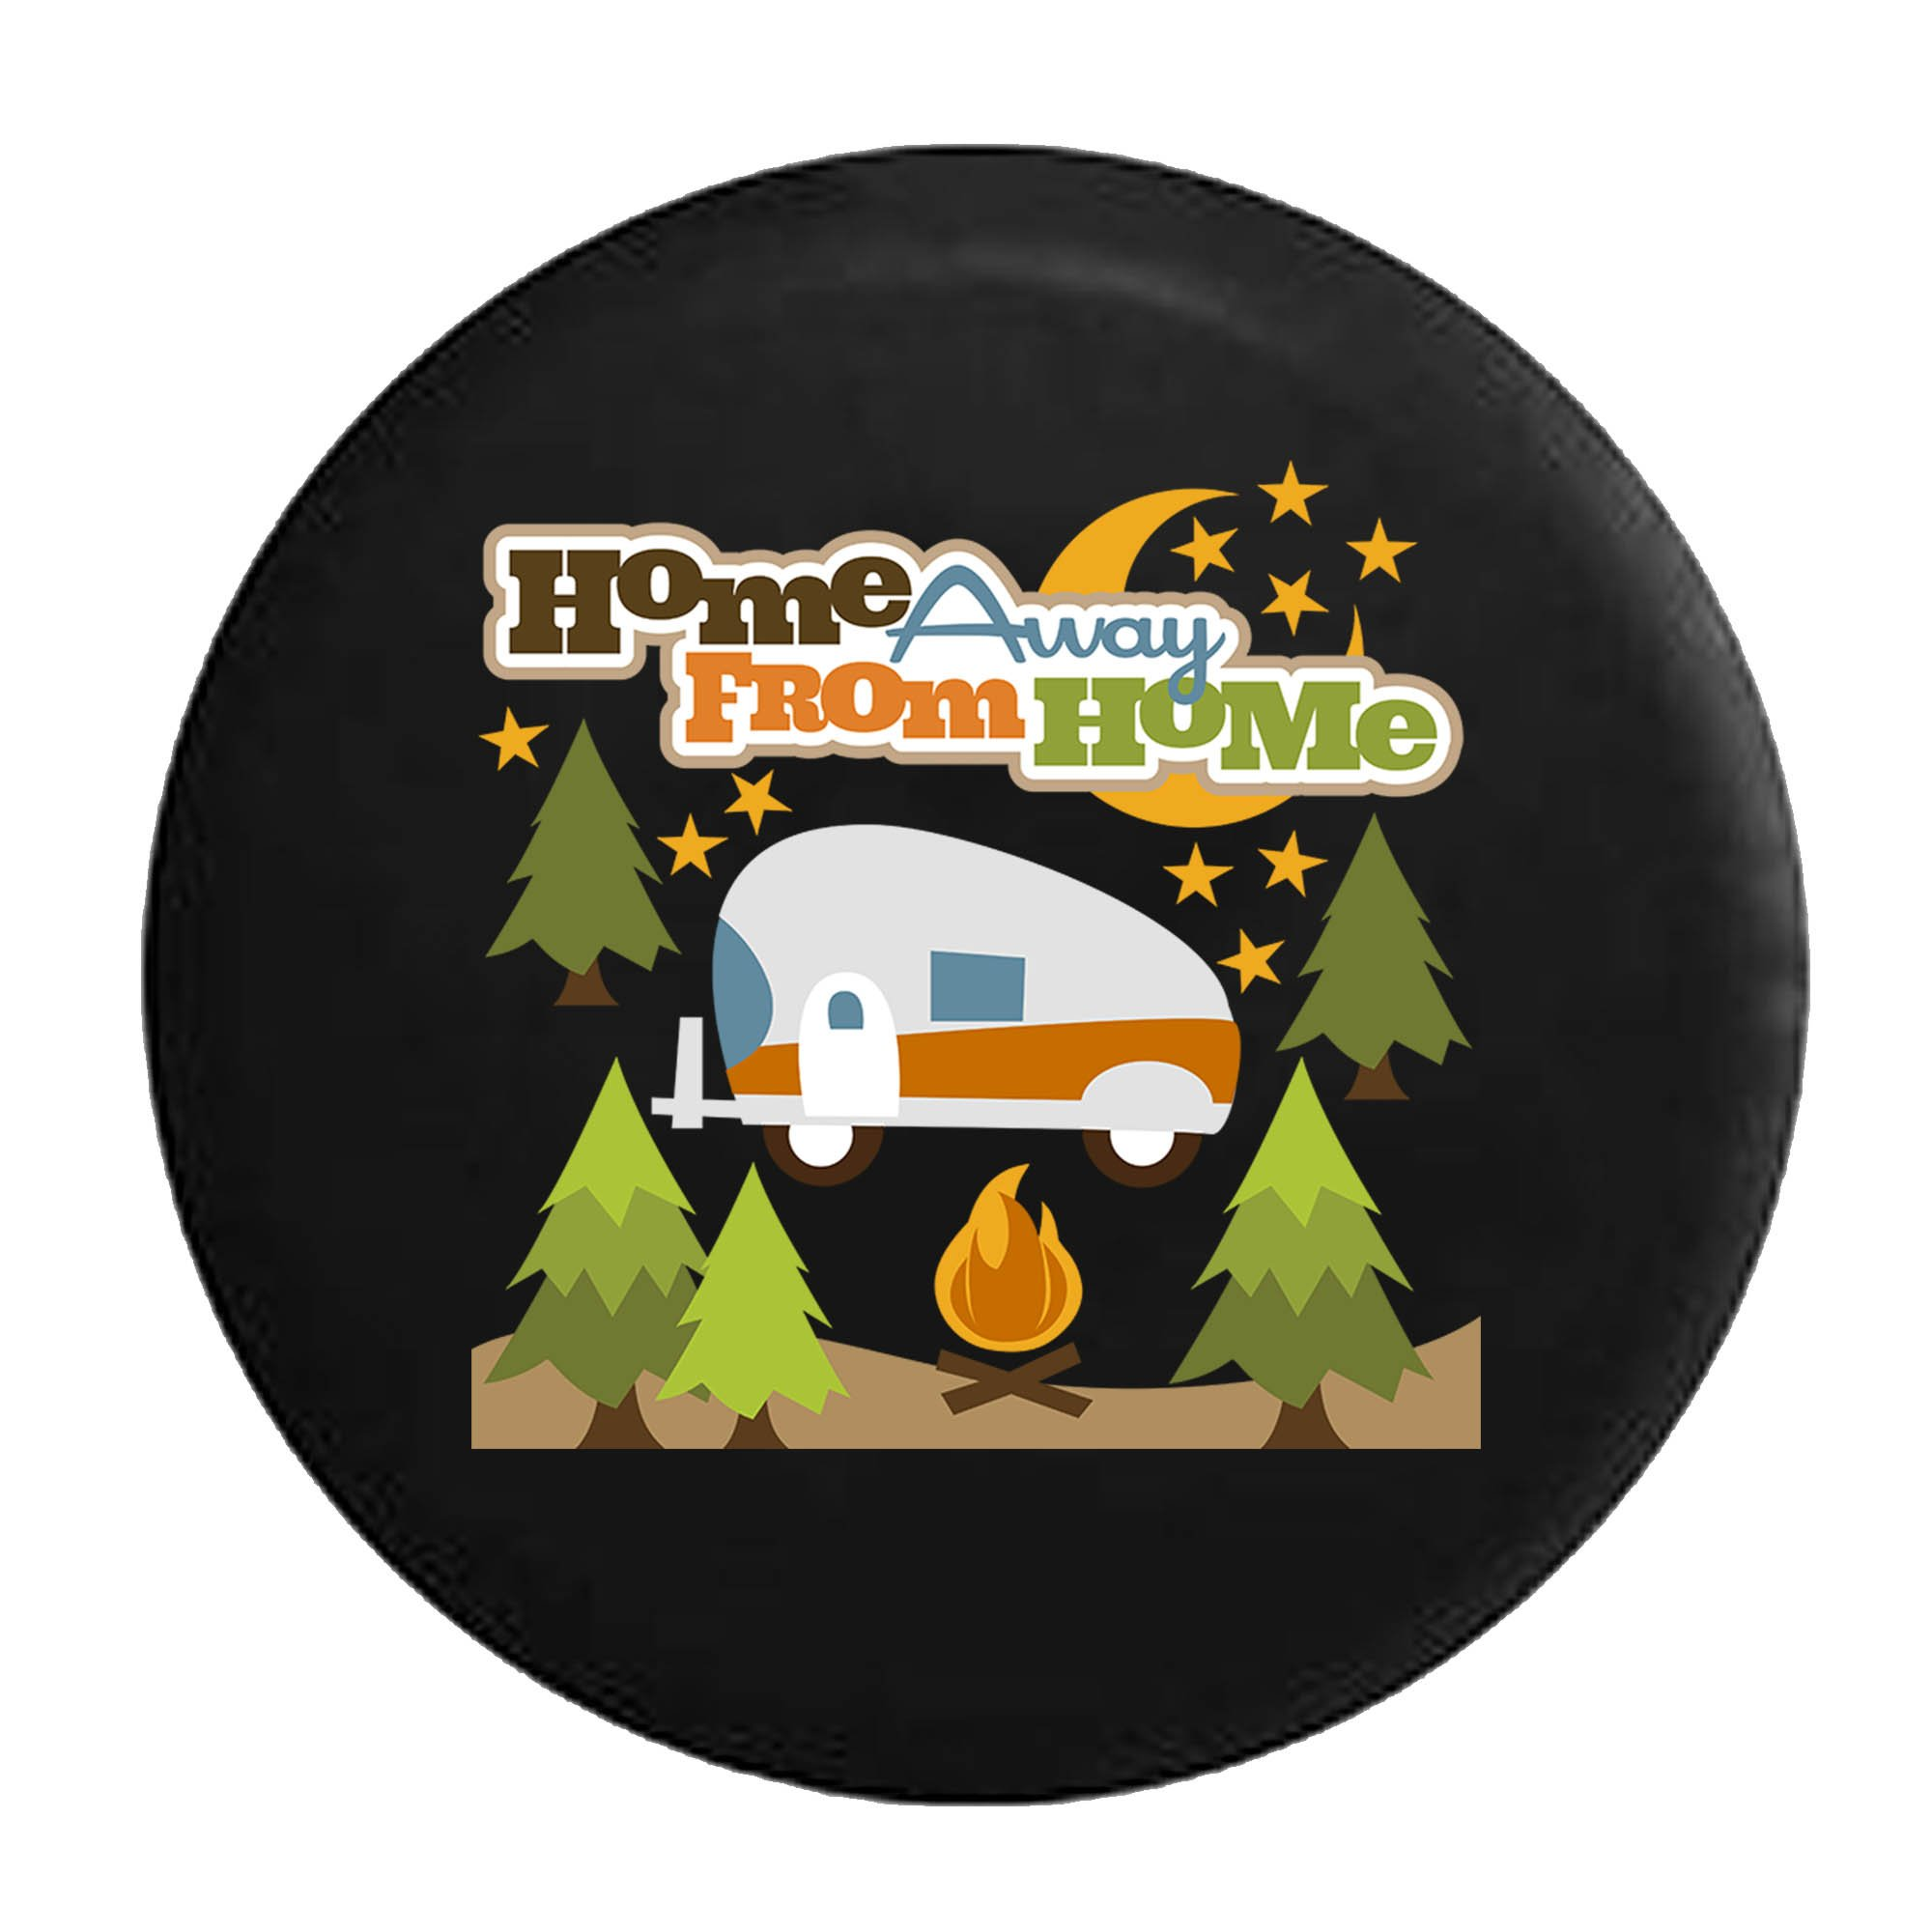 Pike Outdoors Home Away from Home RV Trailer Campfire Camping Tire Cover Black 35 in by Pike Outdoors